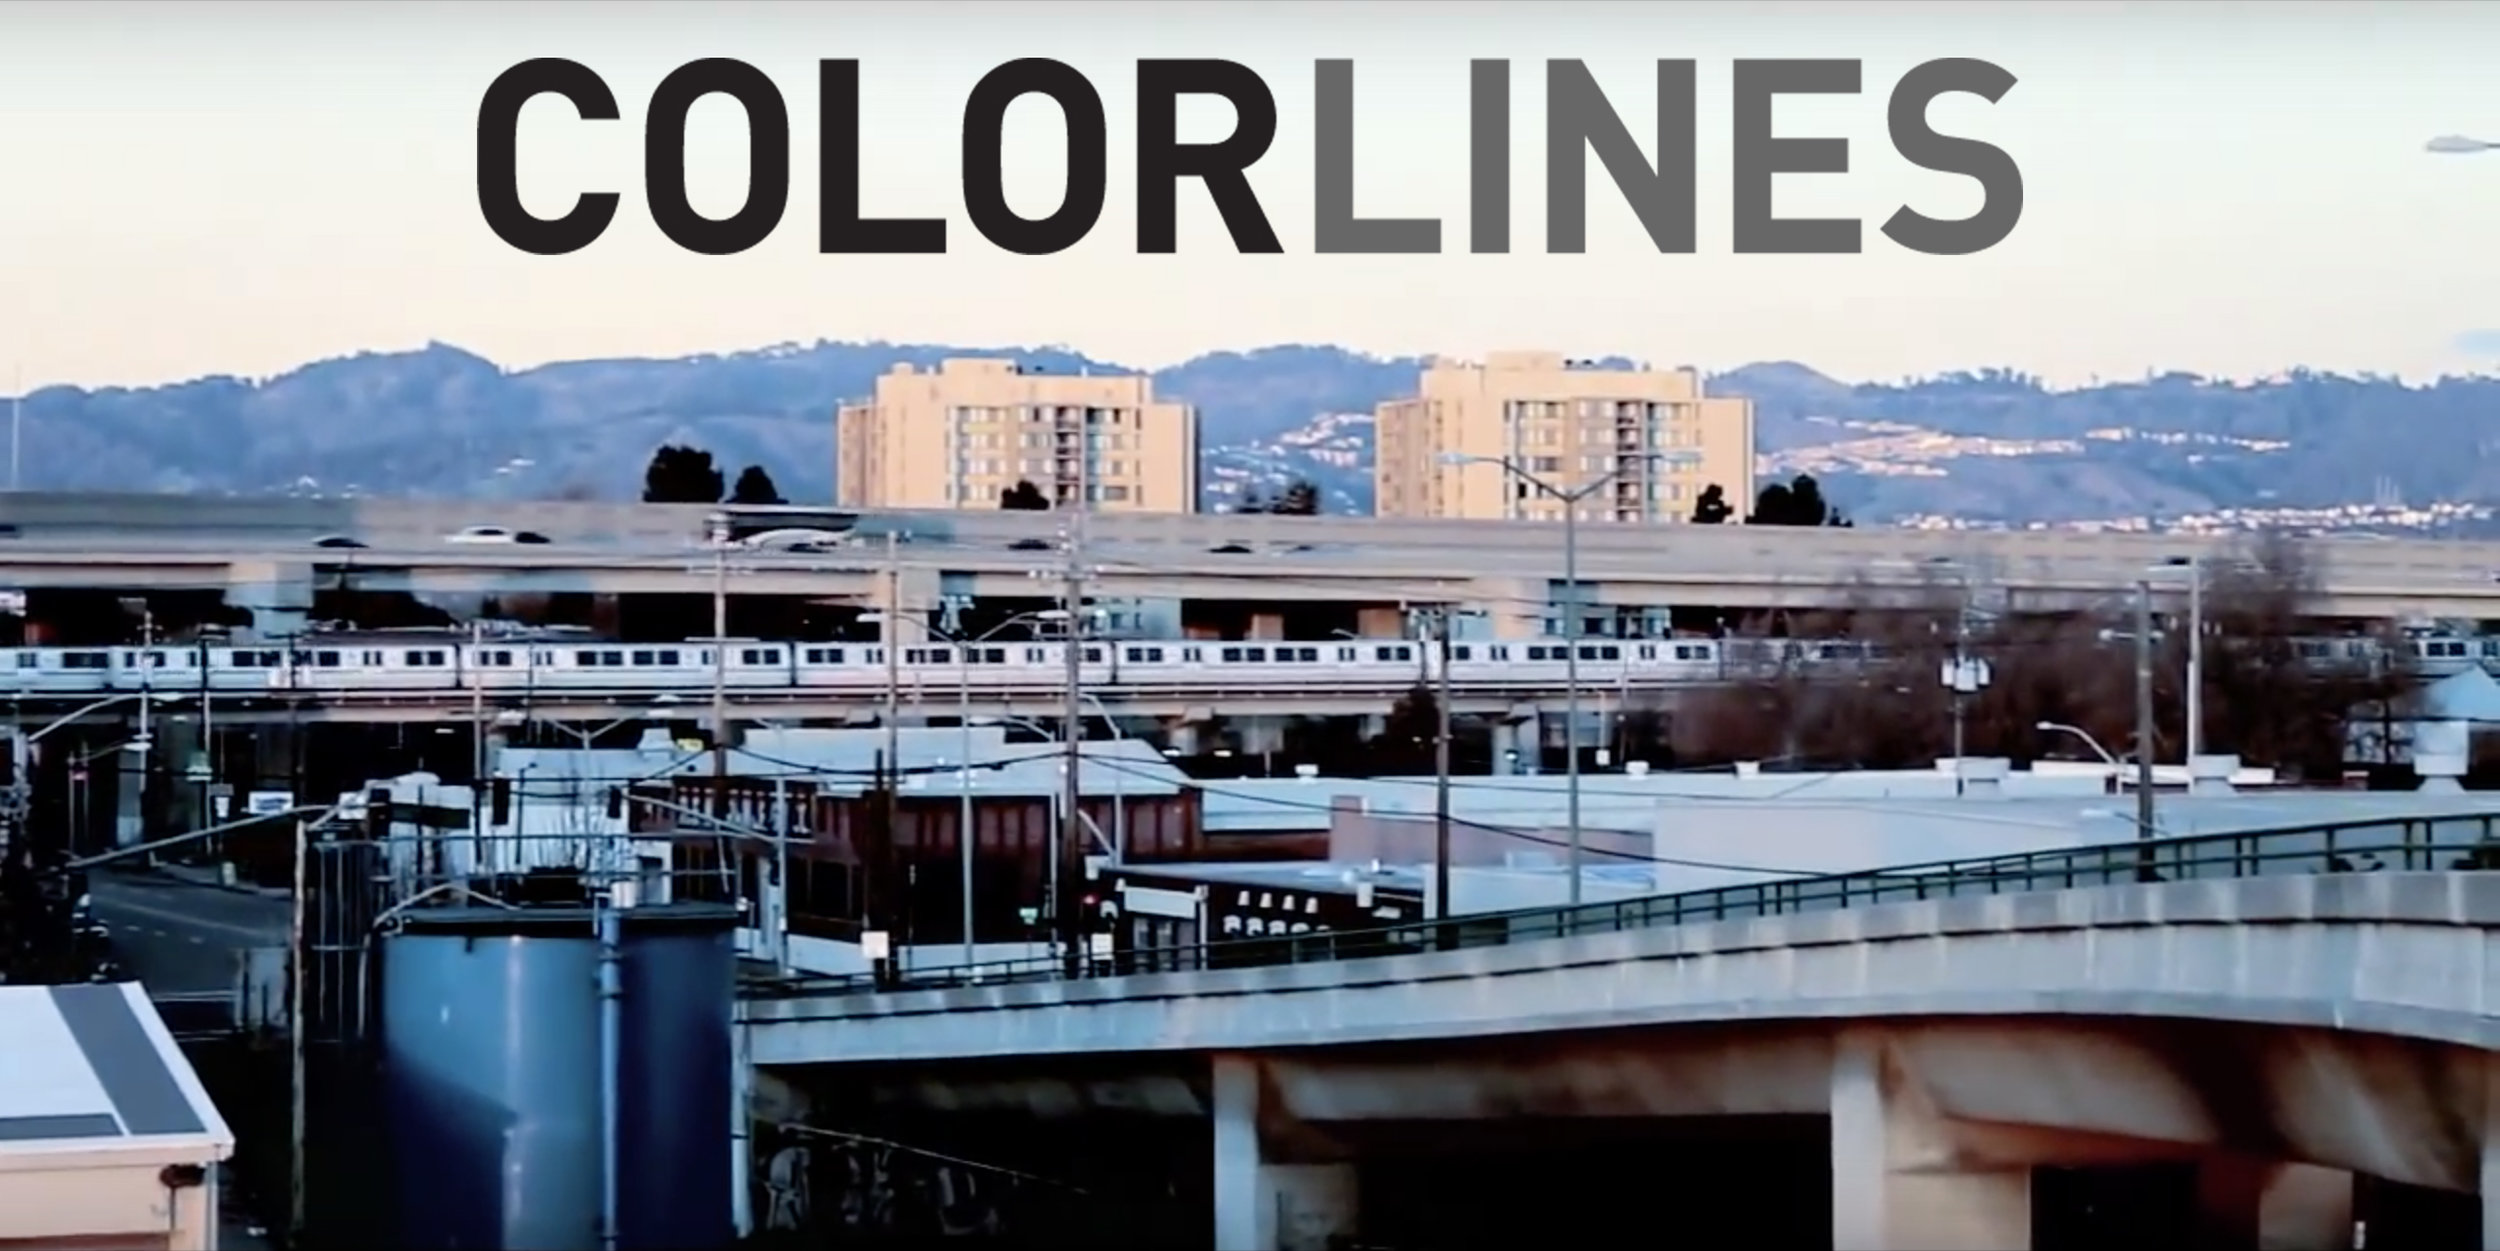 COLORLINES: She Fights Trafficking with Film -